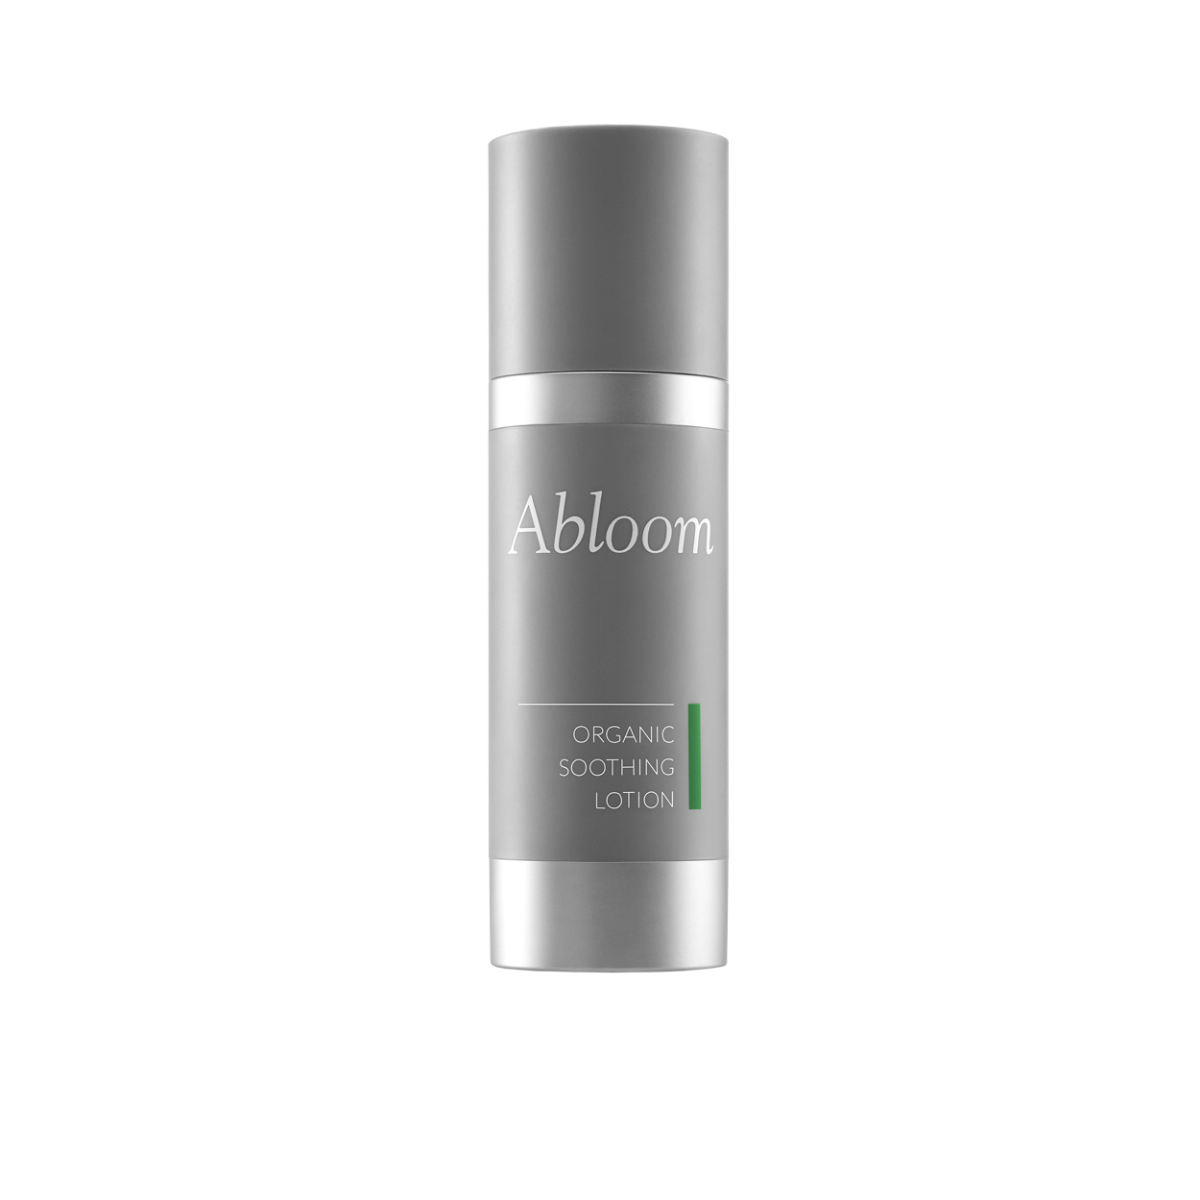 abloom_organic_soothing_lotion_white_def